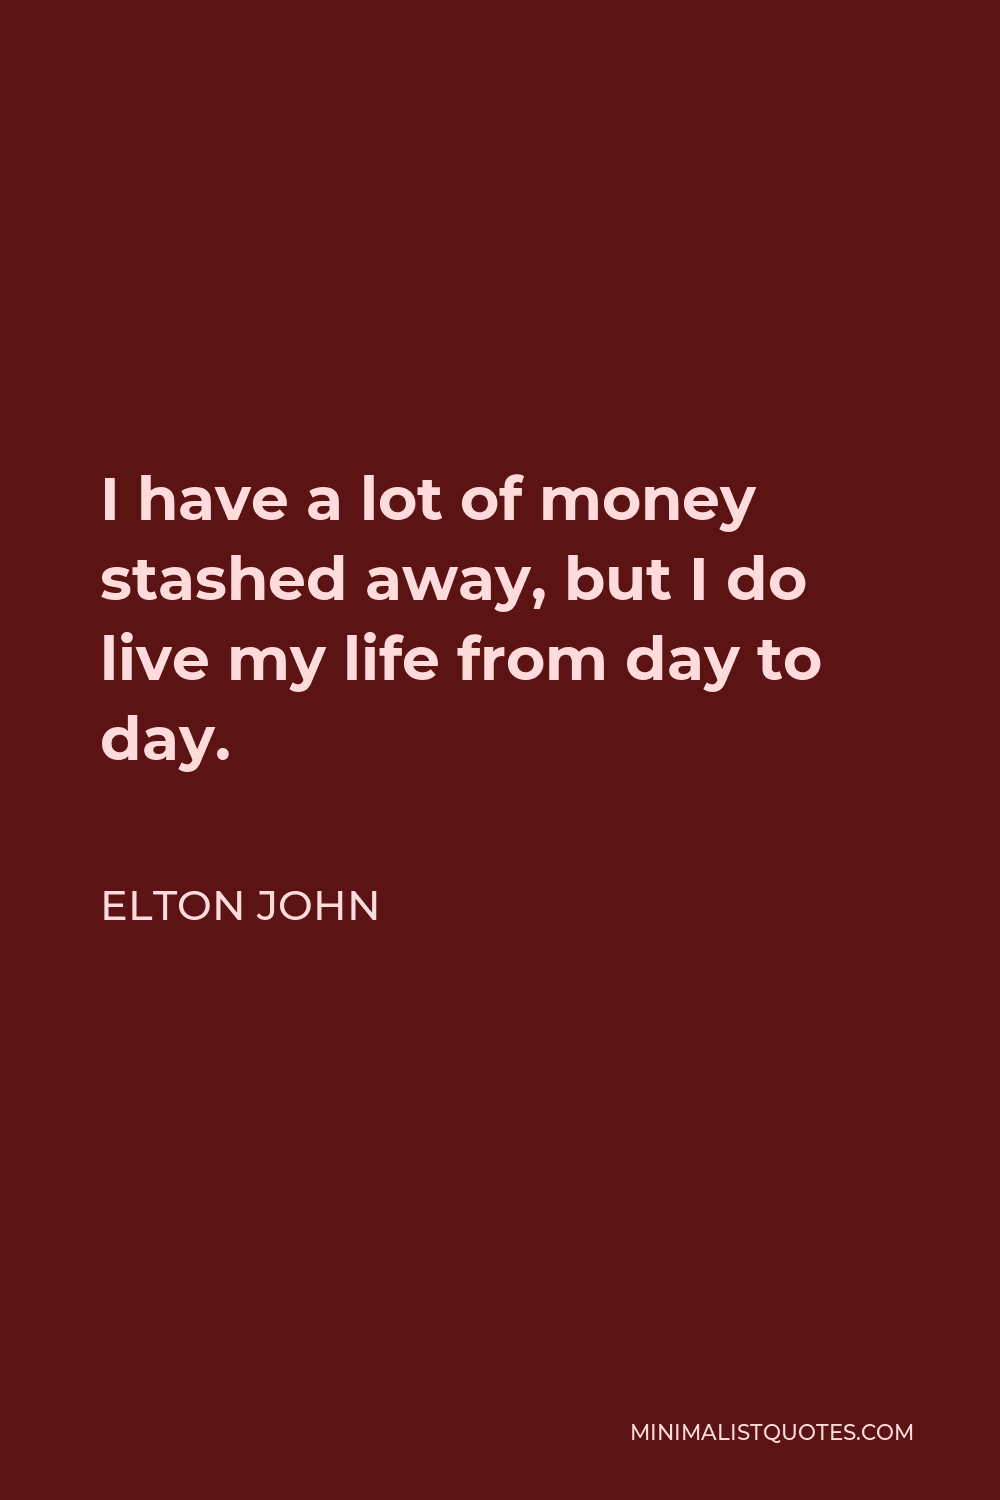 Elton John Quote - I have a lot of money stashed away, but I do live my life from day to day.